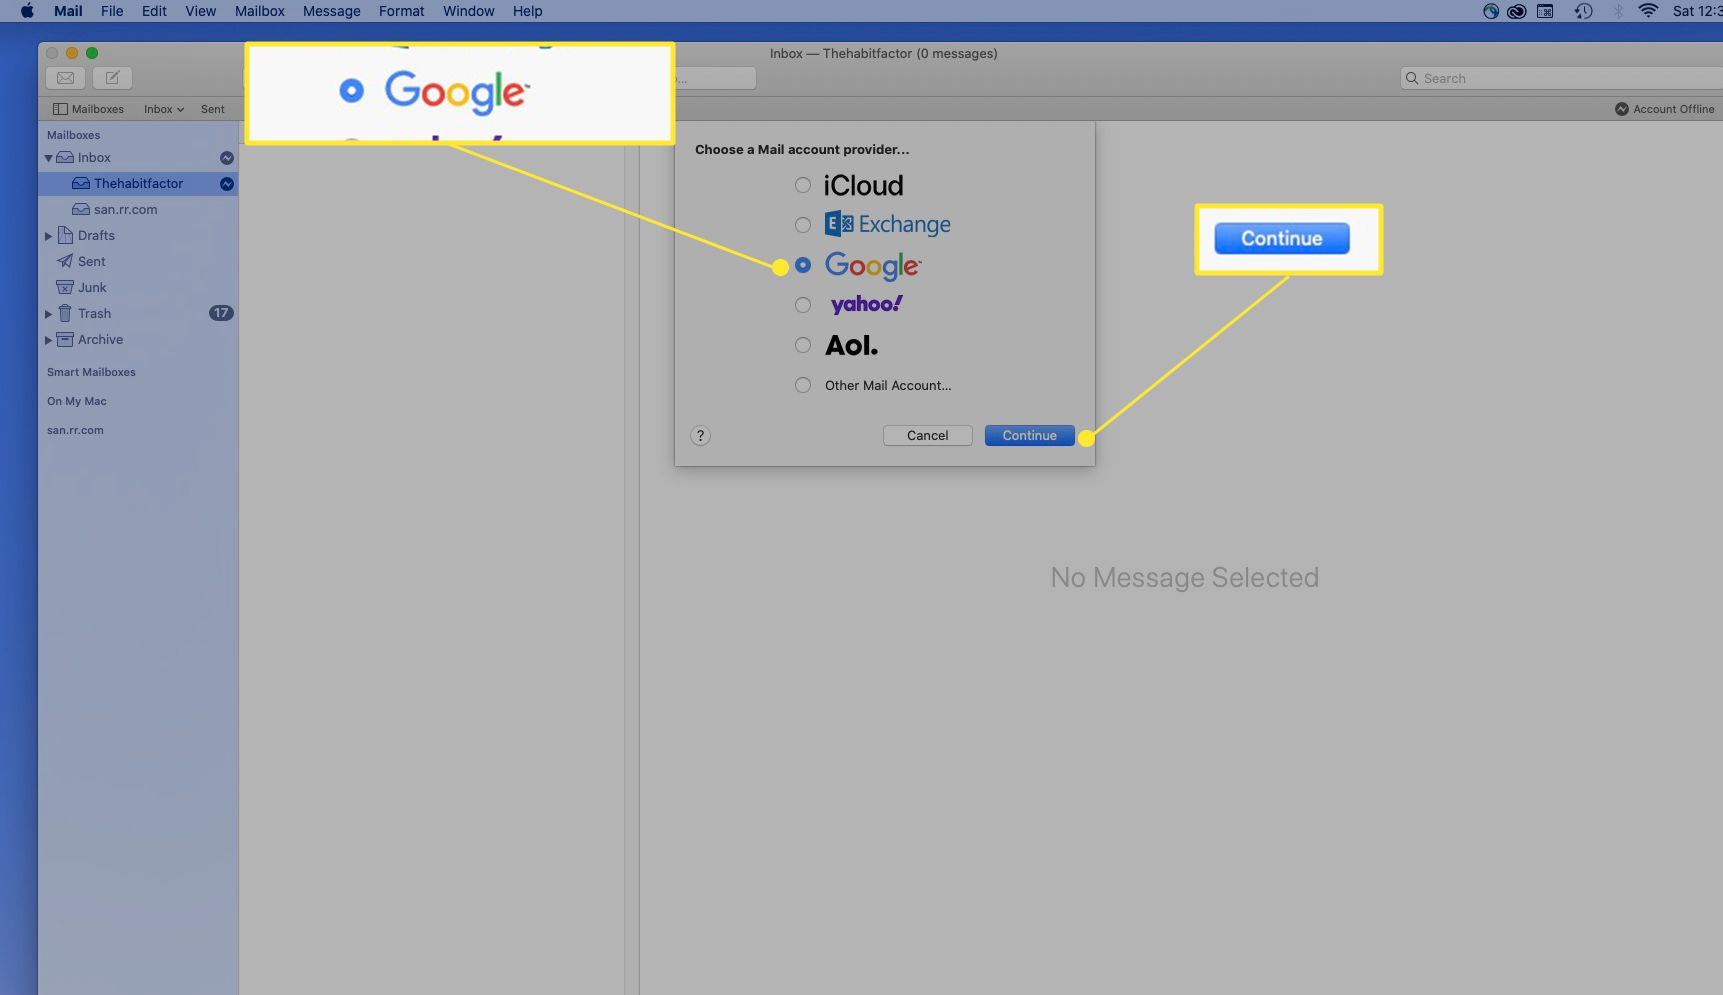 Google option in Add Account for Mail